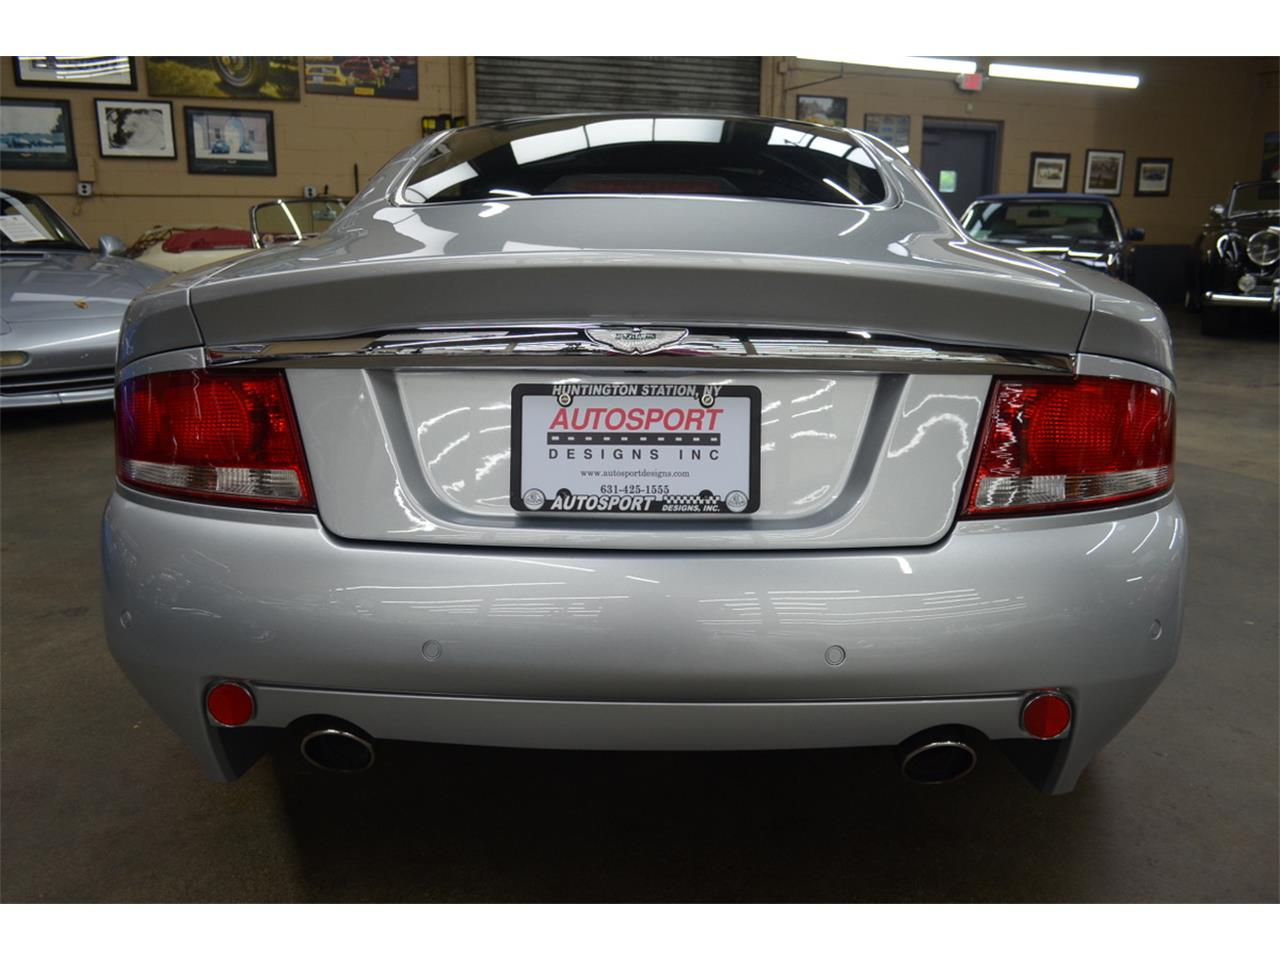 2004 Aston Martin Vanquish (CC-1361746) for sale in Huntington Station, New York